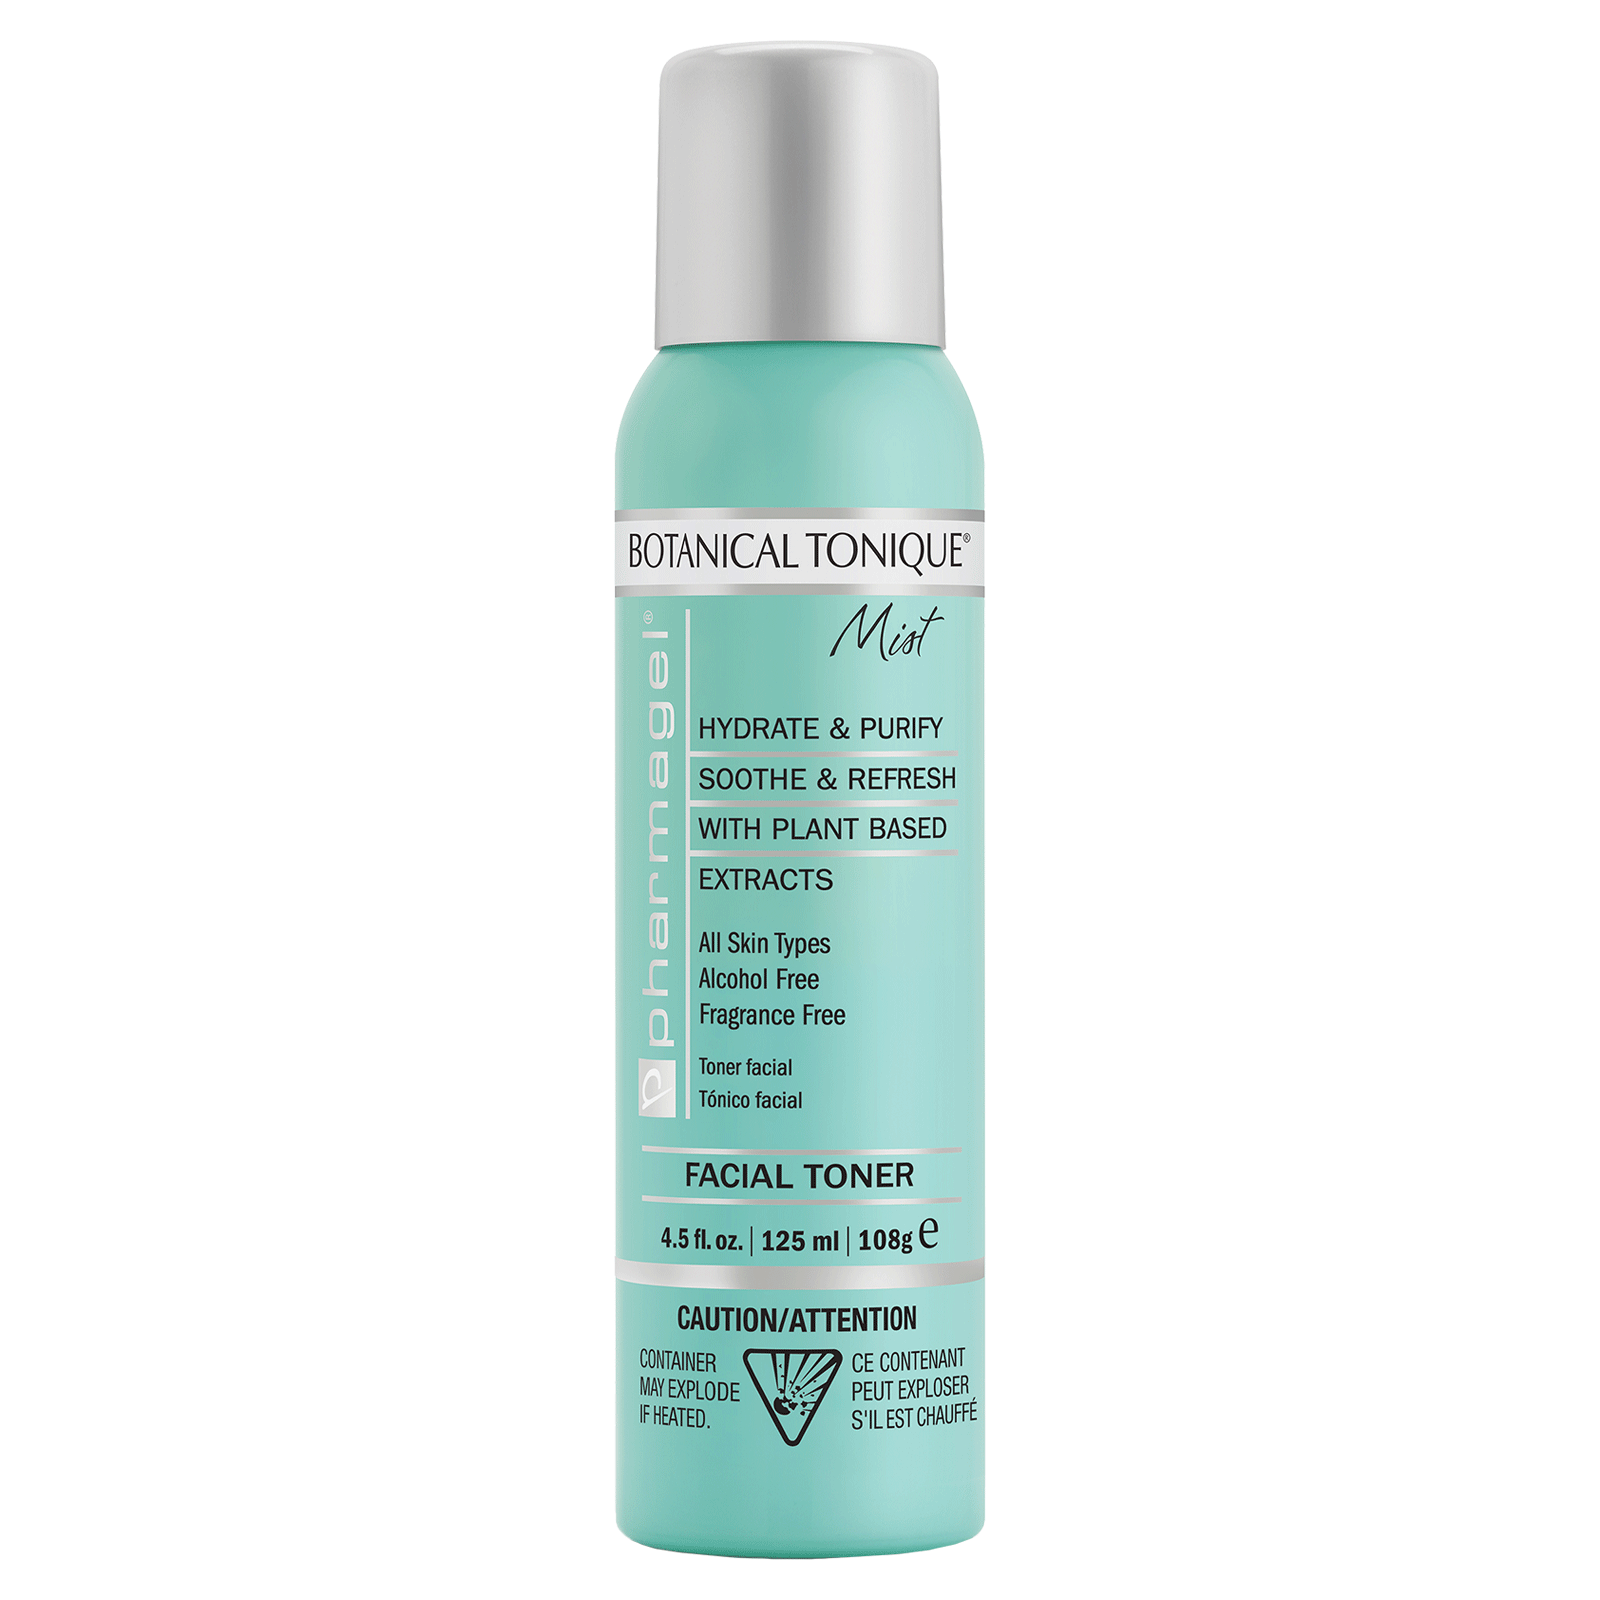 Botanical Tonique Mist